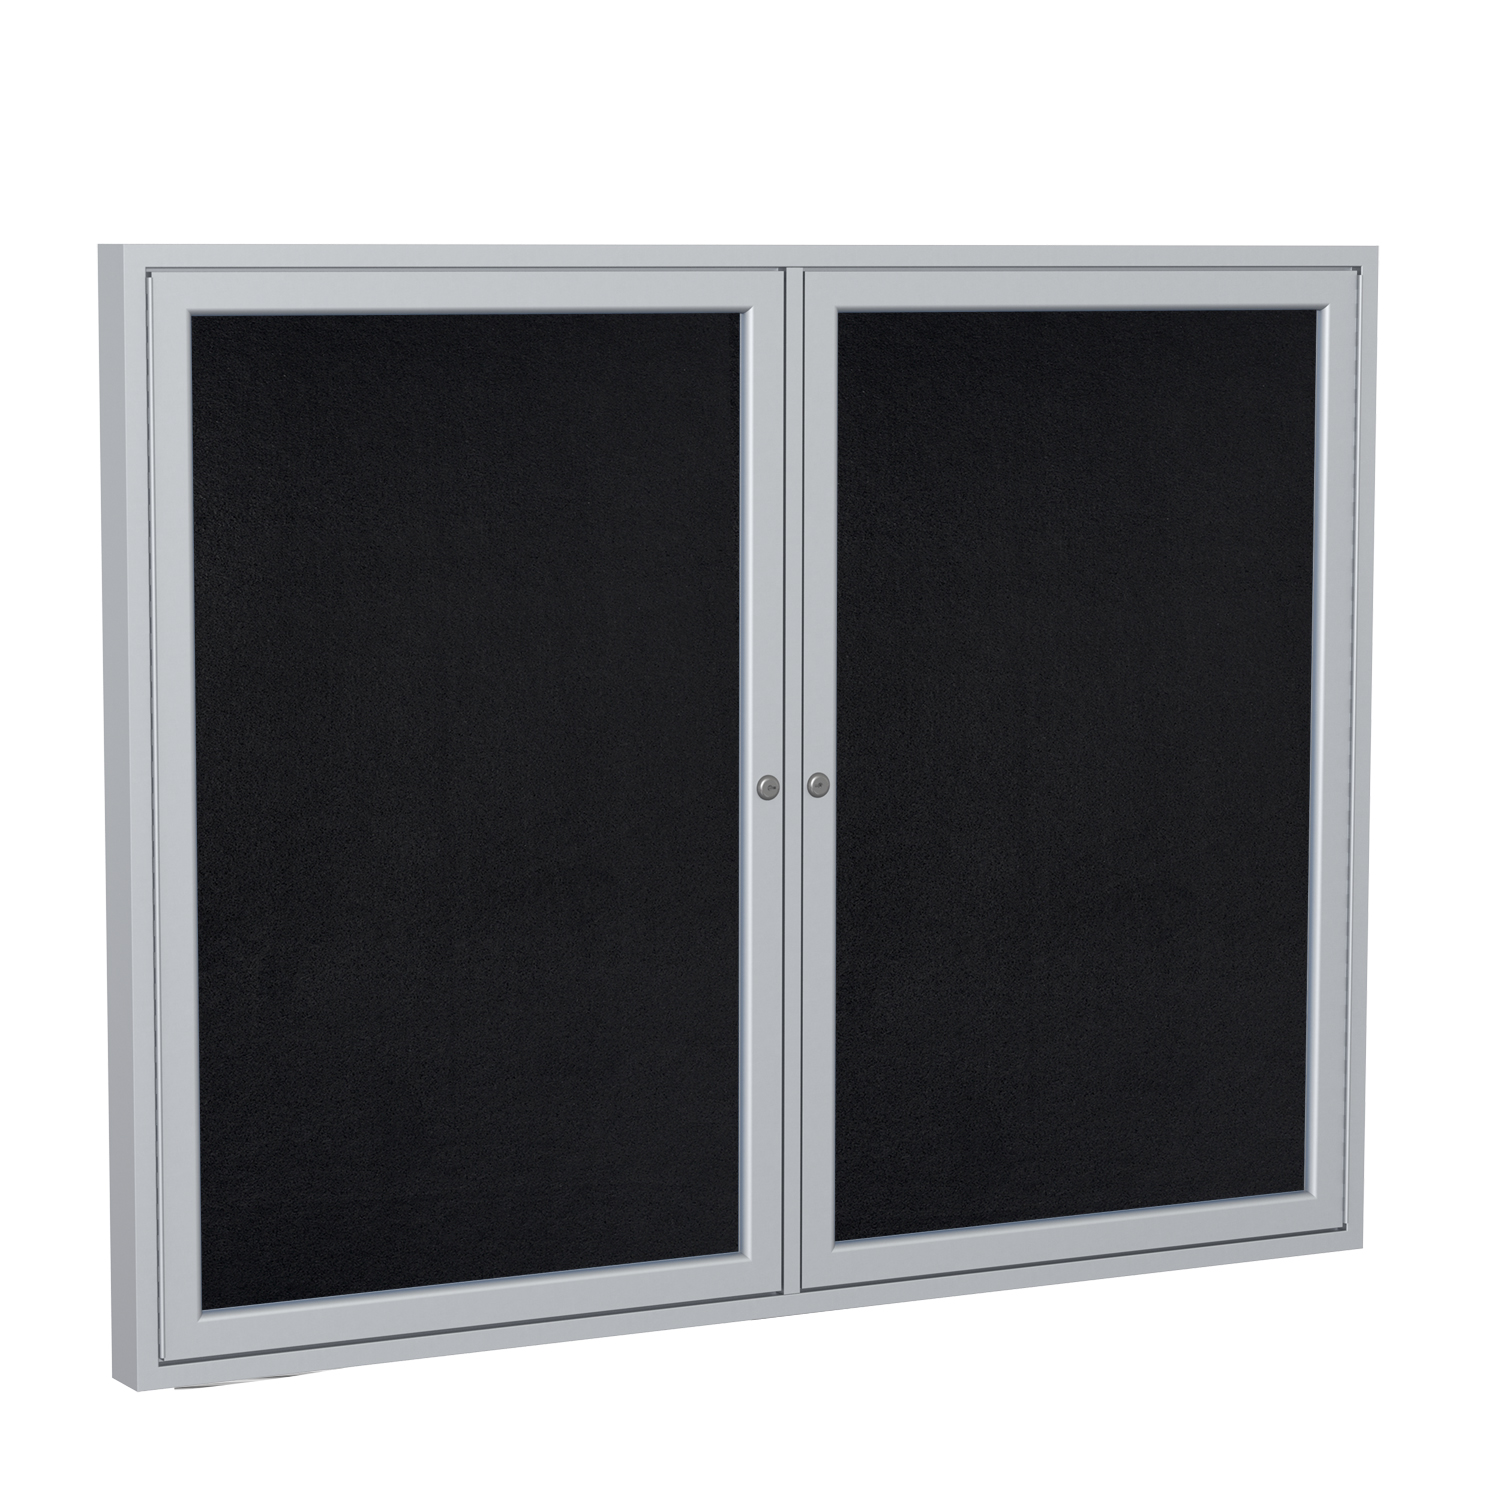 PA23648TR-BK Ghent 2 Door Enclosed Recycled Rubber Bulletin Board with Satin Frame Wall Mounted TackBoard, 3'H x 4'W, Black